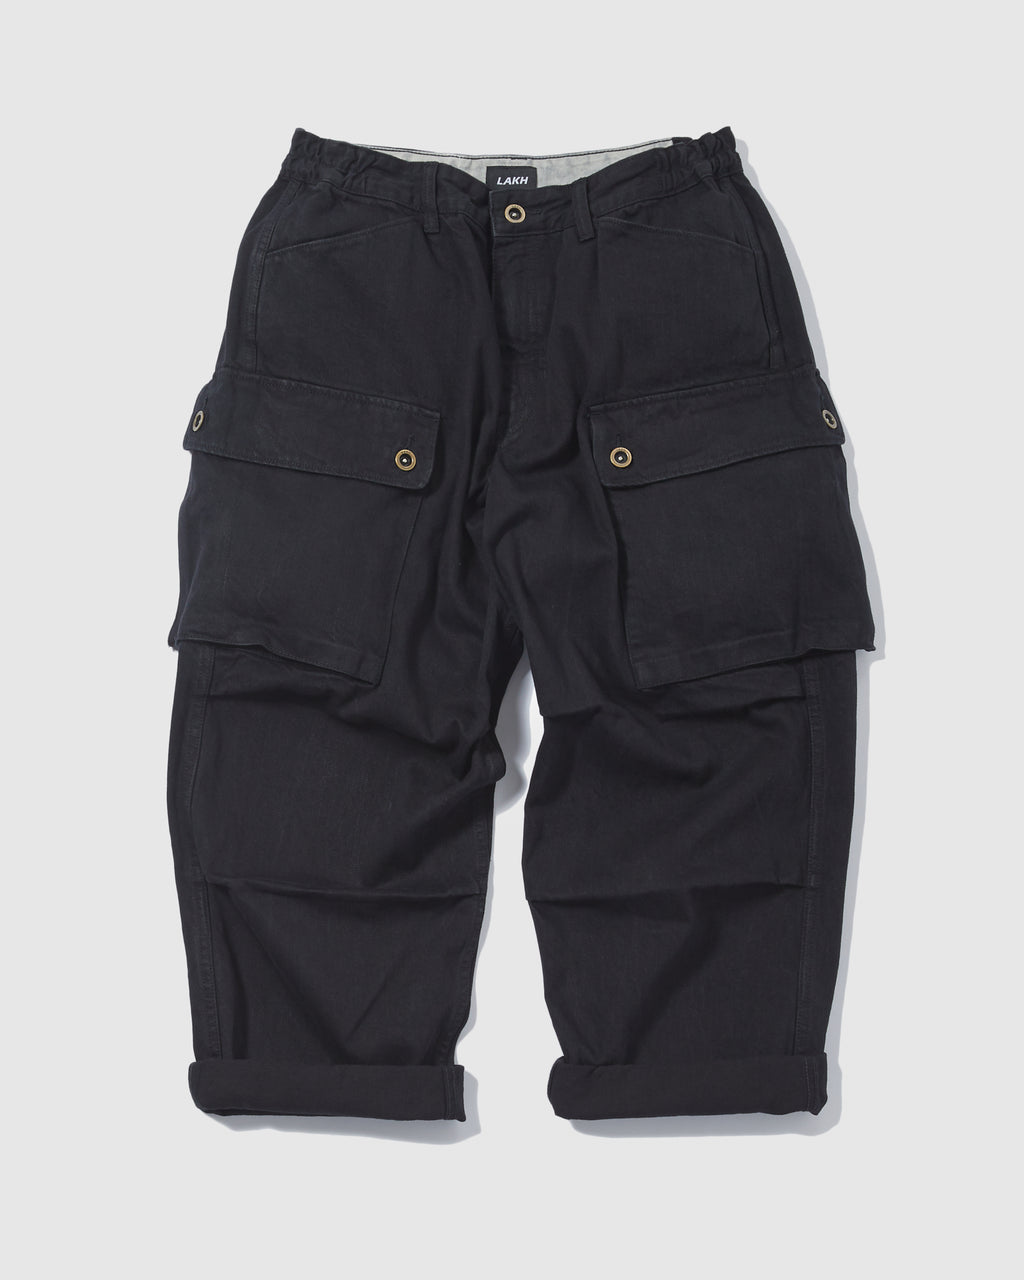 Wide Cargo Pants Denim  - Black